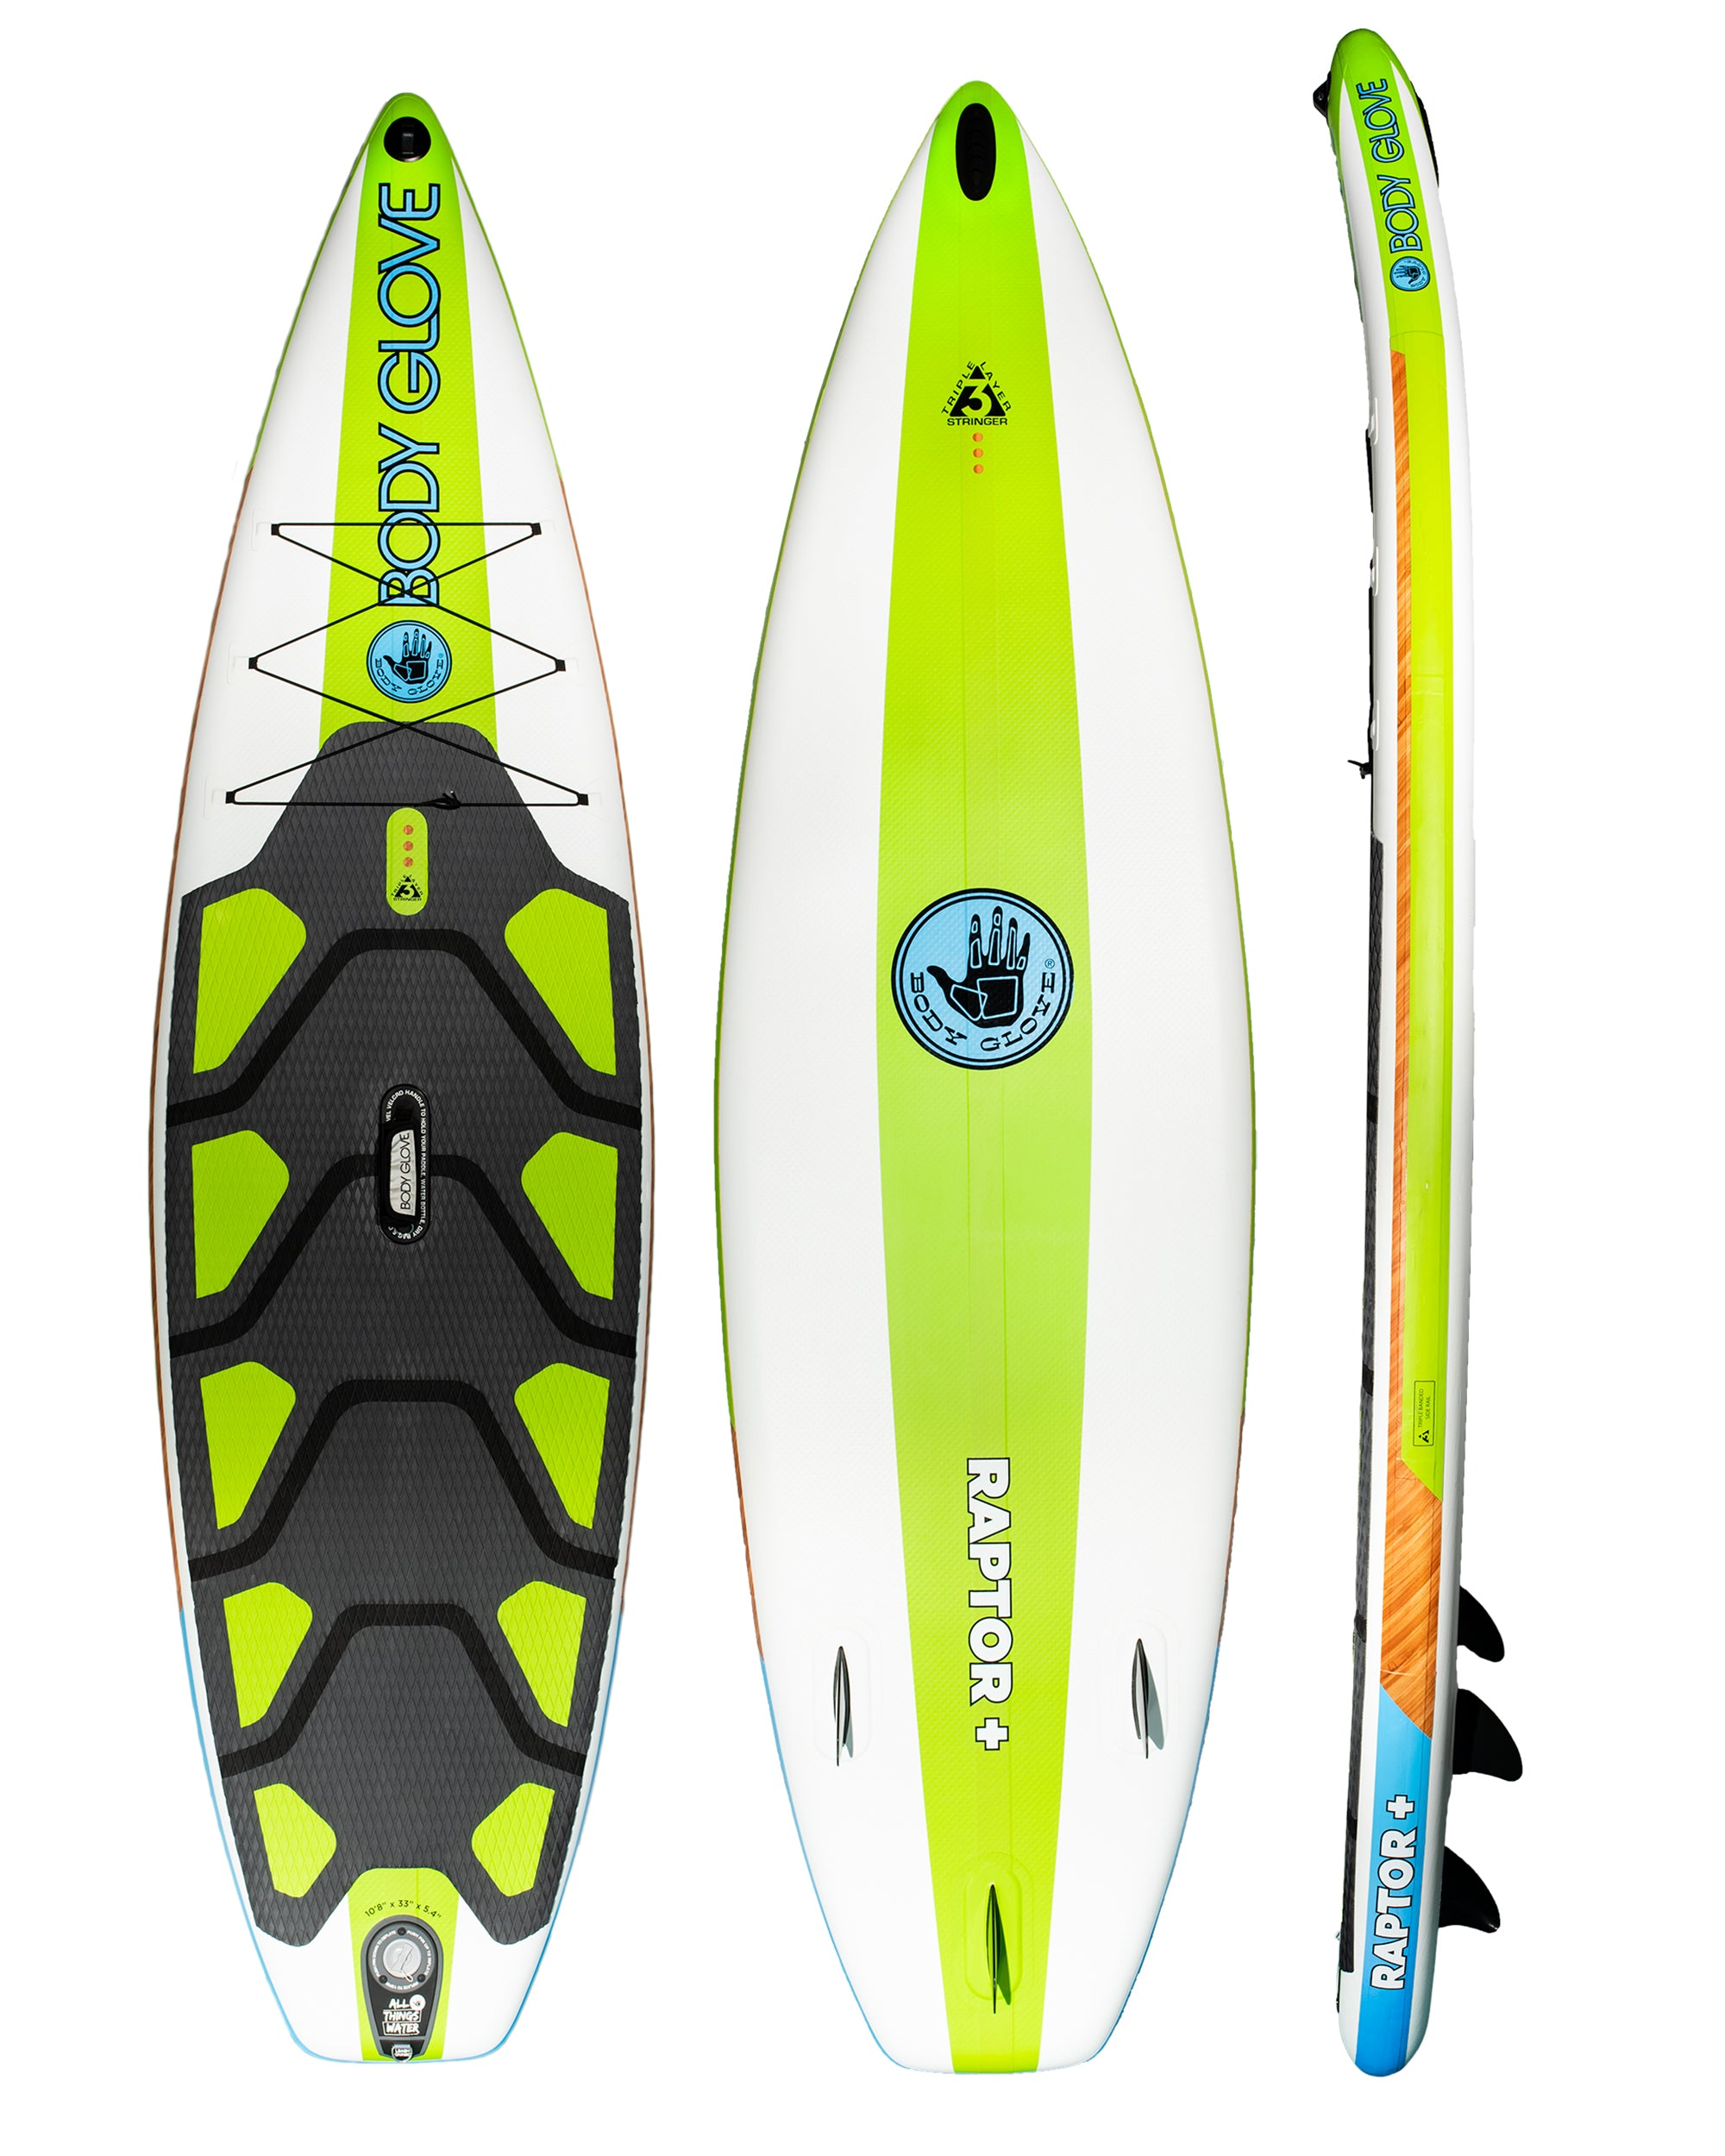 "Raptor Plus 10'8"" Inflatable Stand Up Paddle Board (ISUP) with Bag, Paddle & Pump"